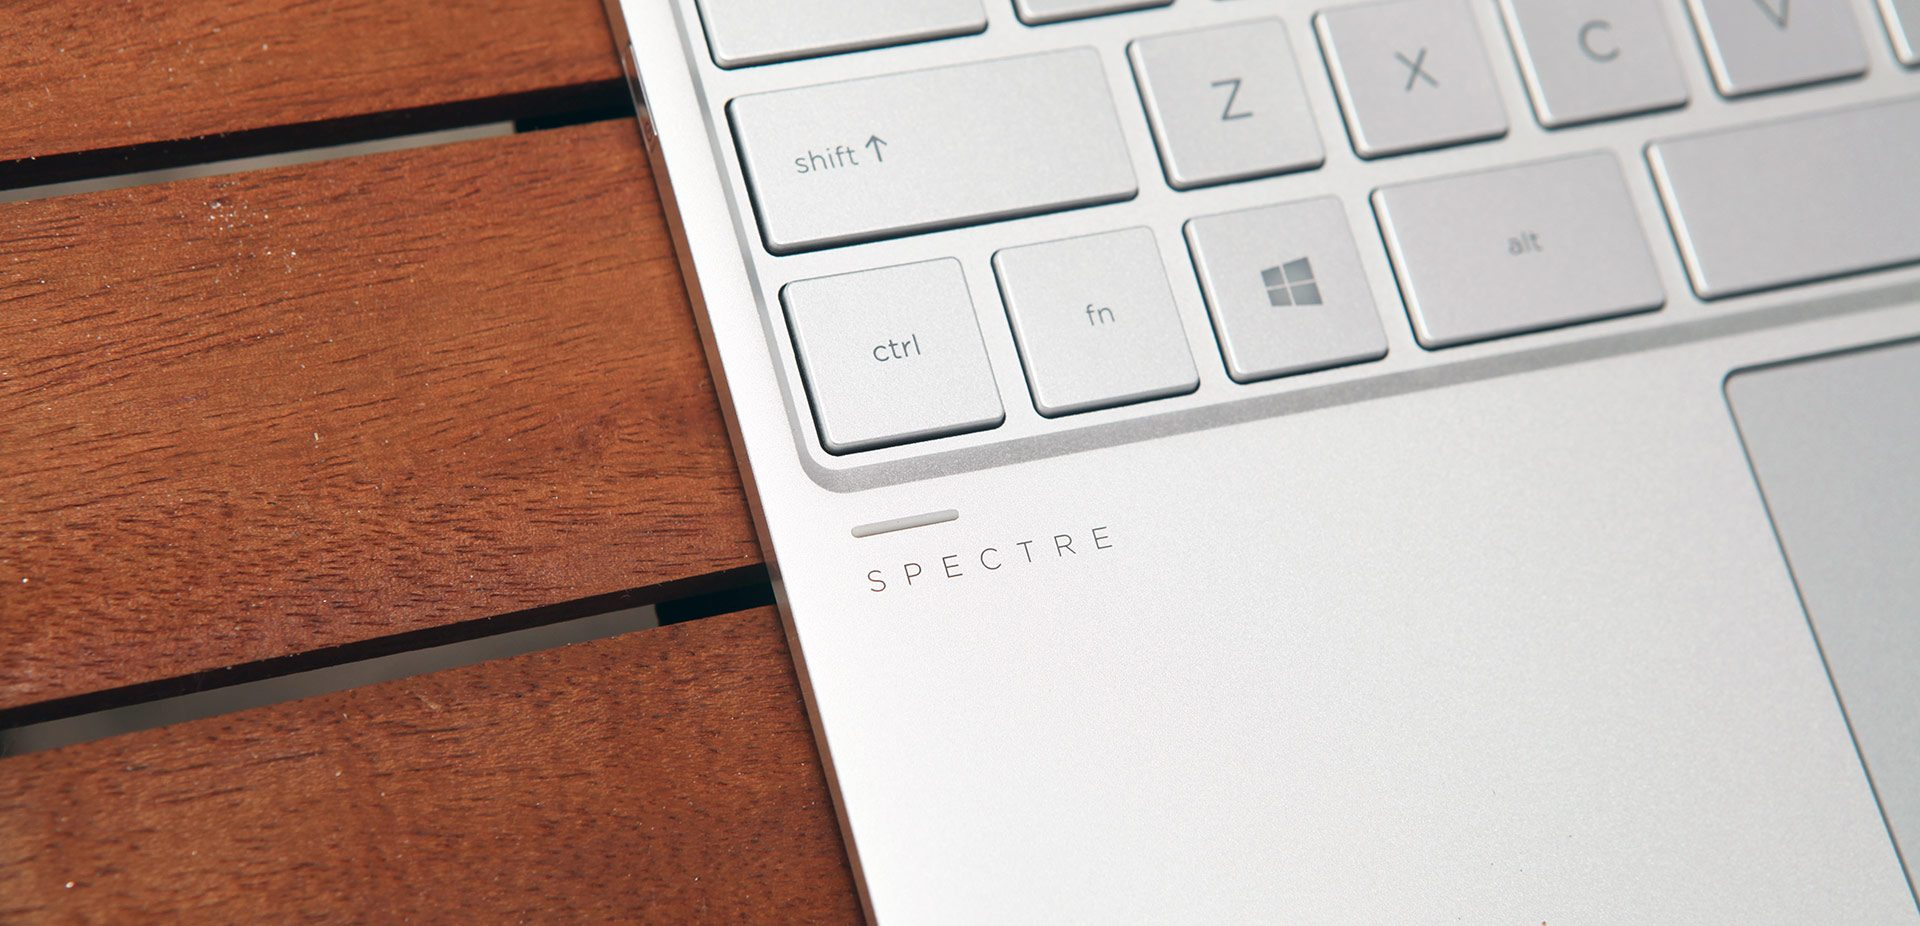 HP Spectre x360 review (13-inch, early 2017) - there's none like it